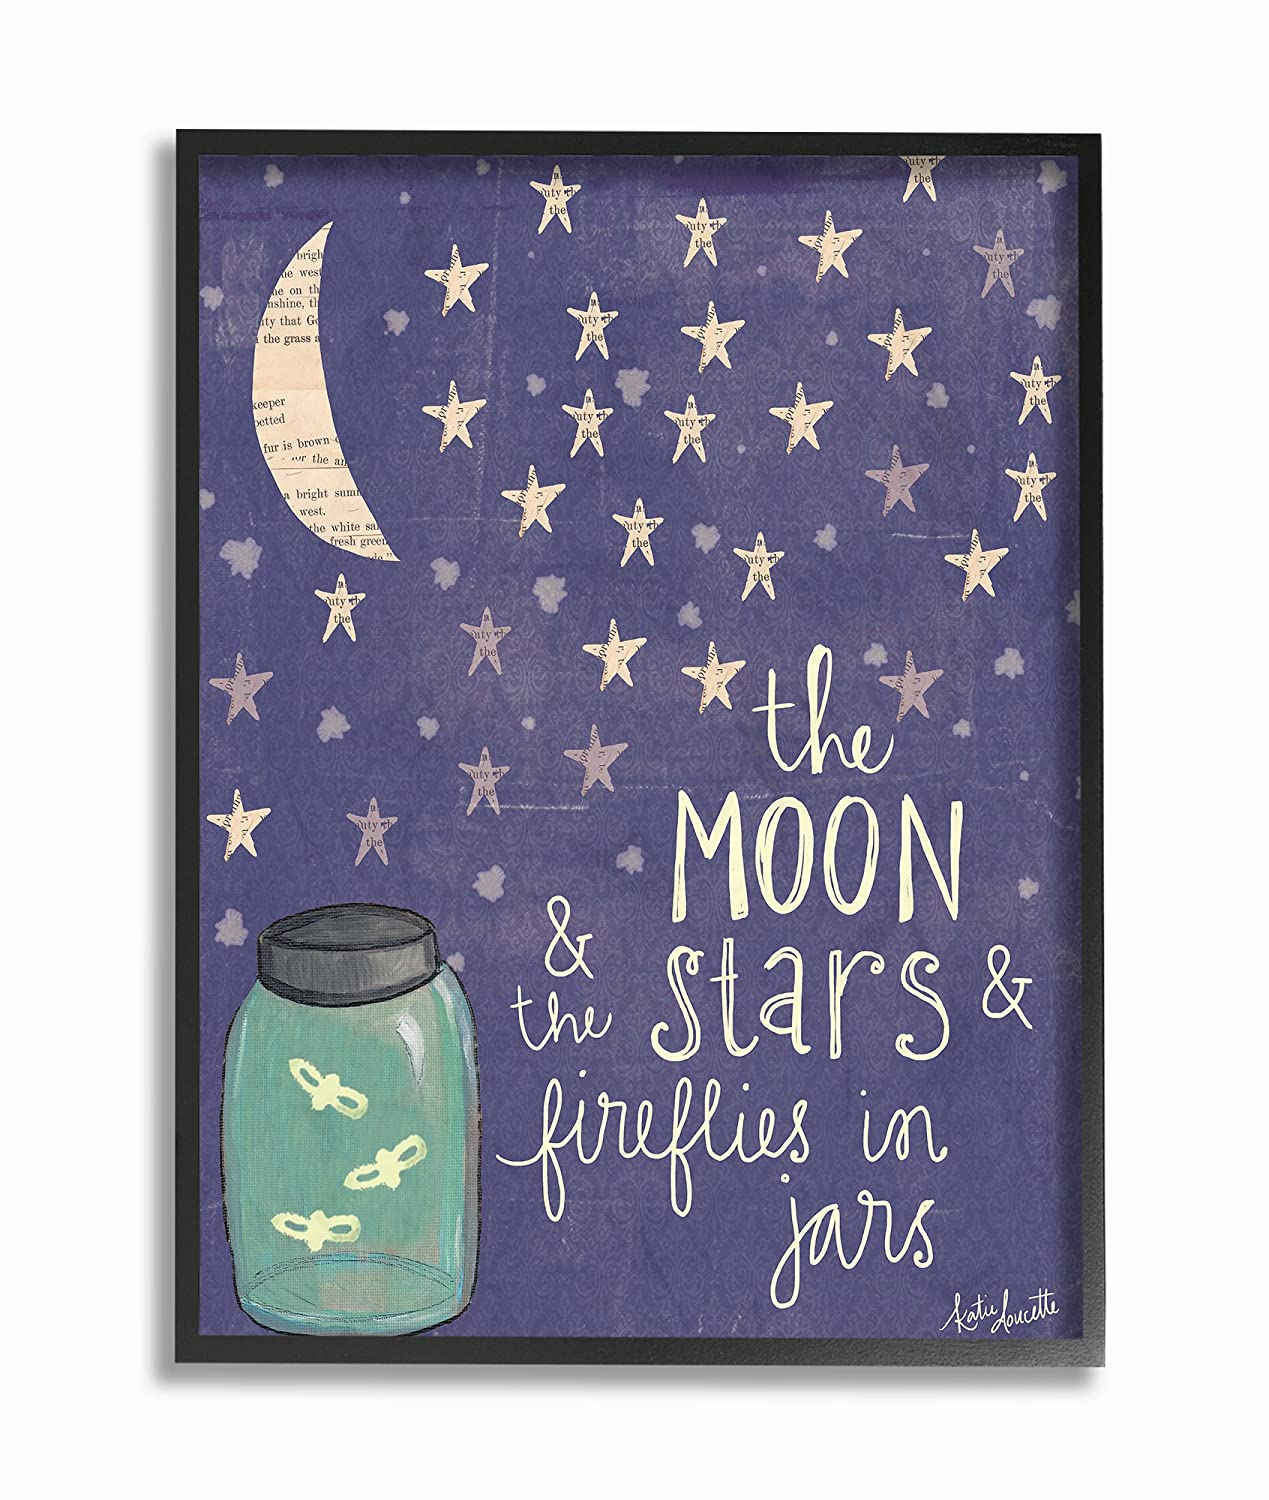 Stupell Industries Moon Stars Fireflies Wall Plaque Art 10 x 0.5 x 15 Proudly Made in USA